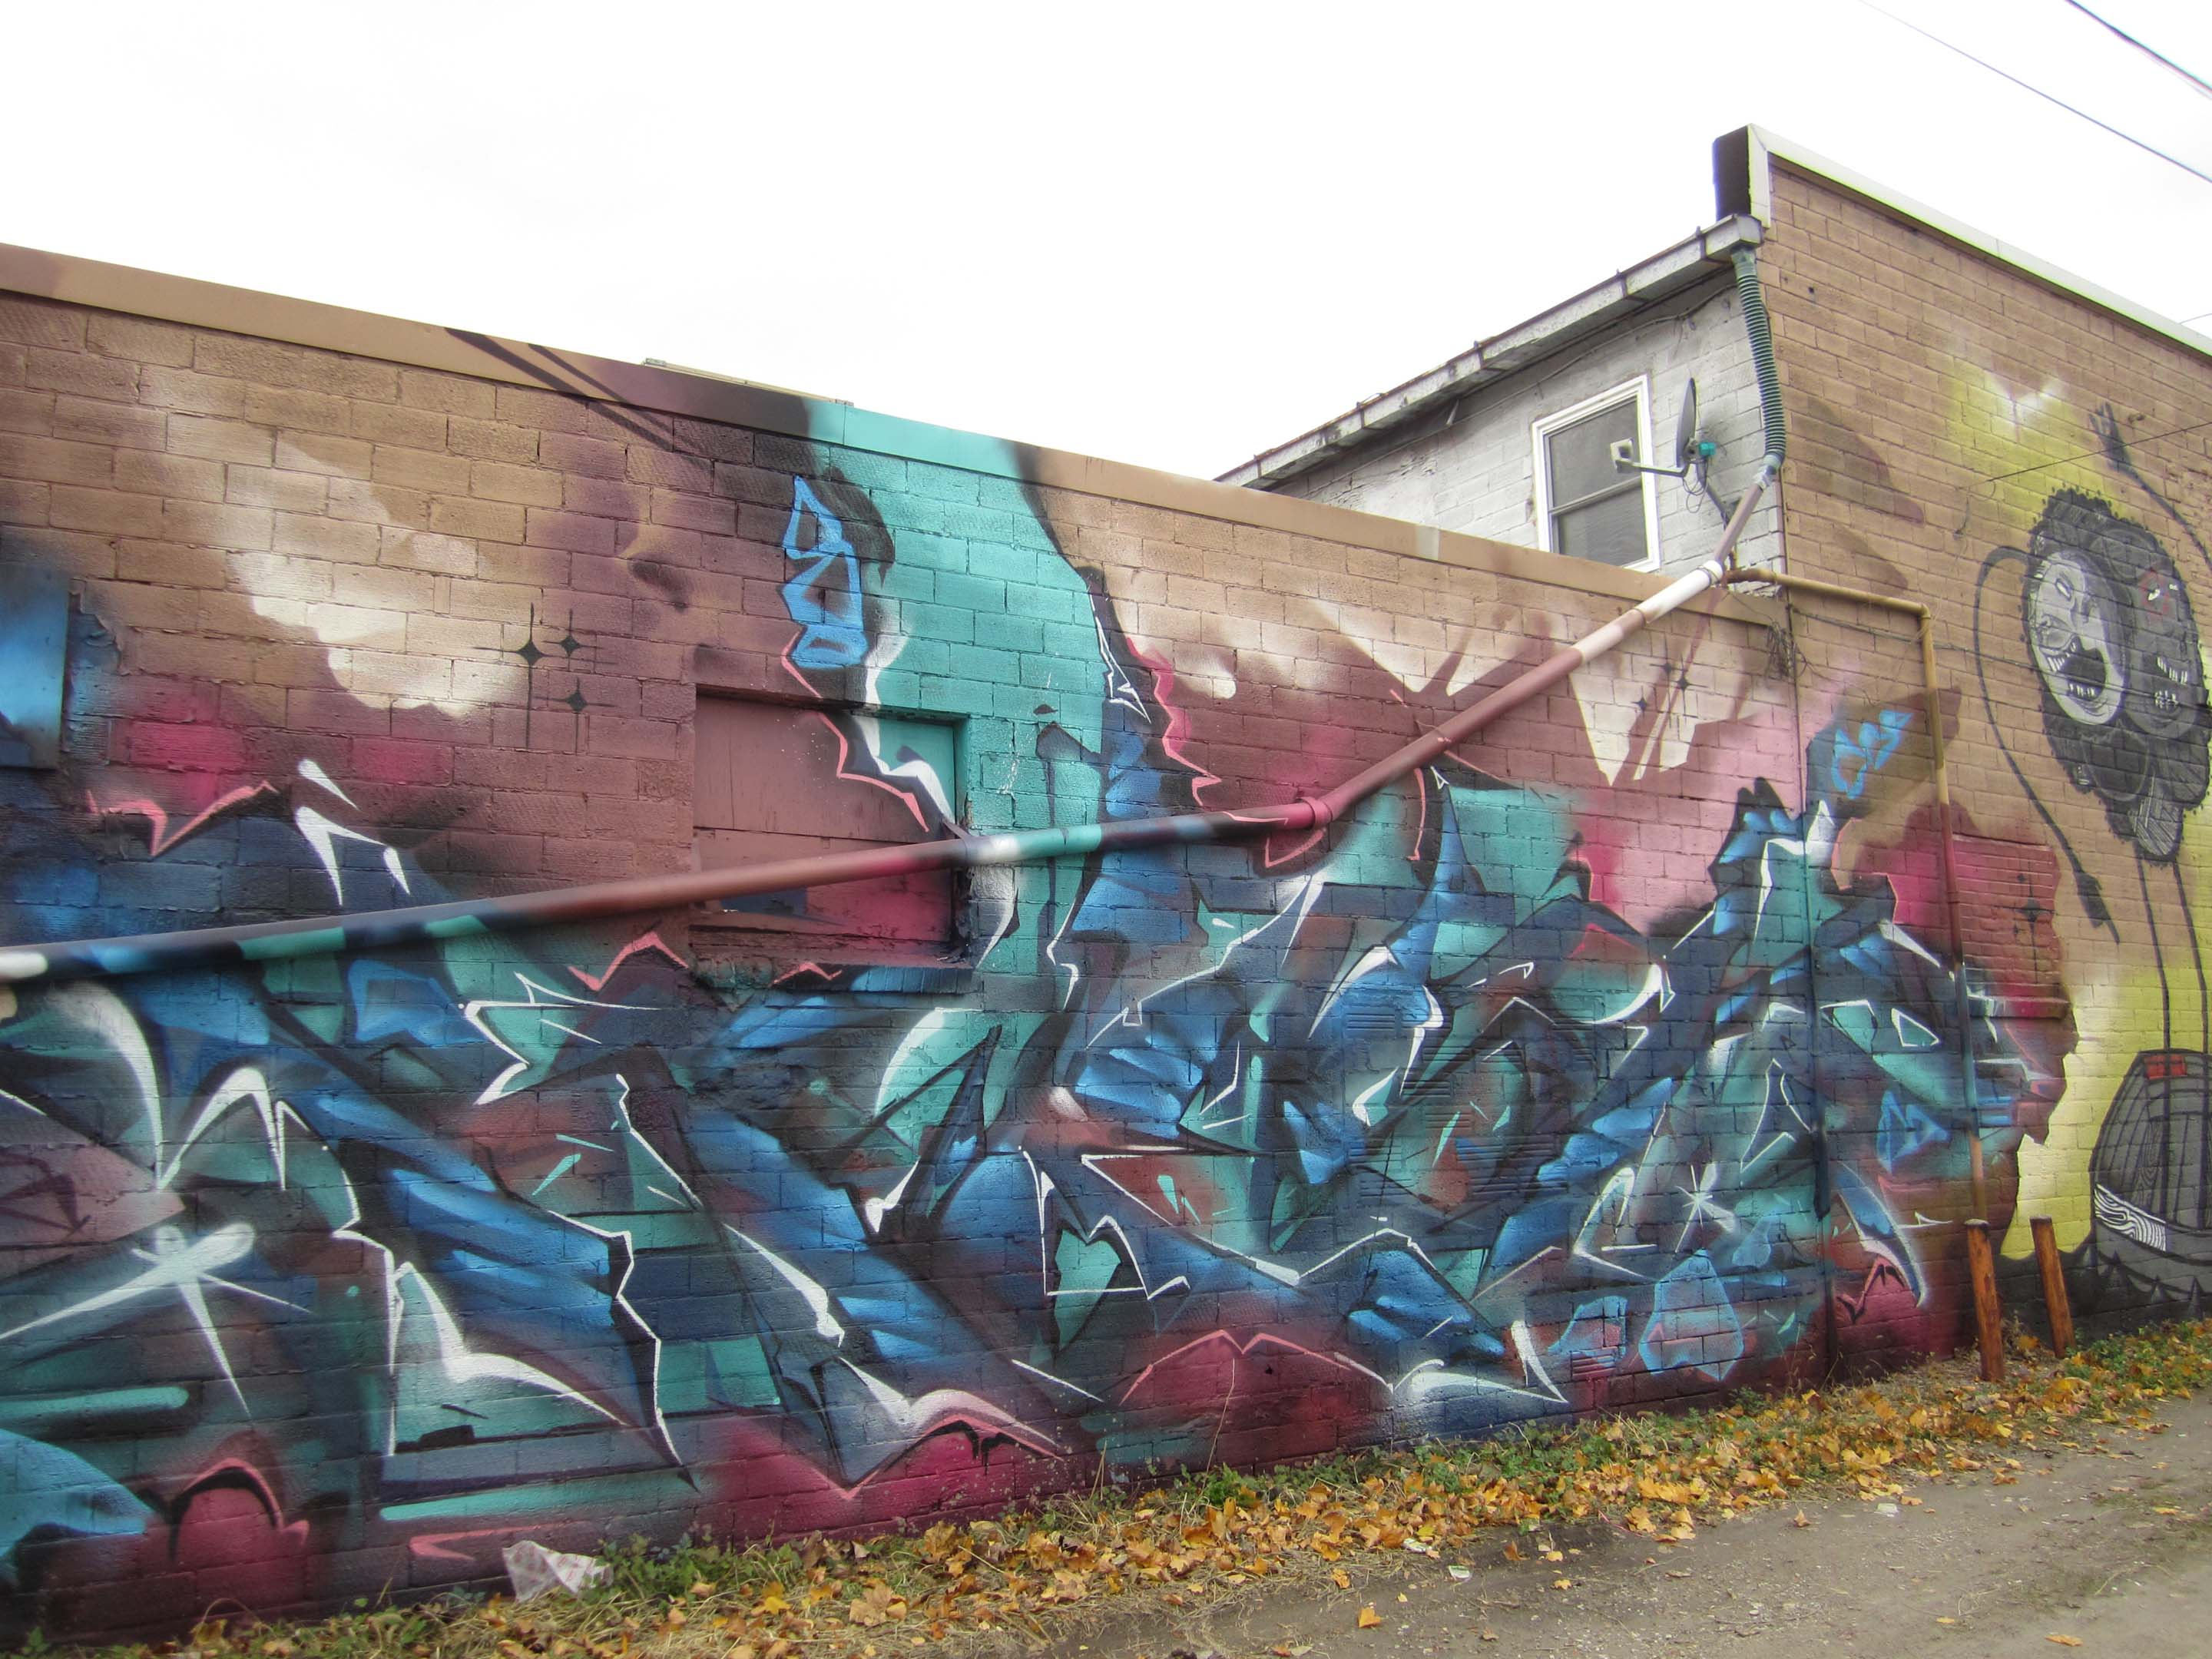 Free 4 All Walls in Windsor, Ontario: Kwest 1.jpg